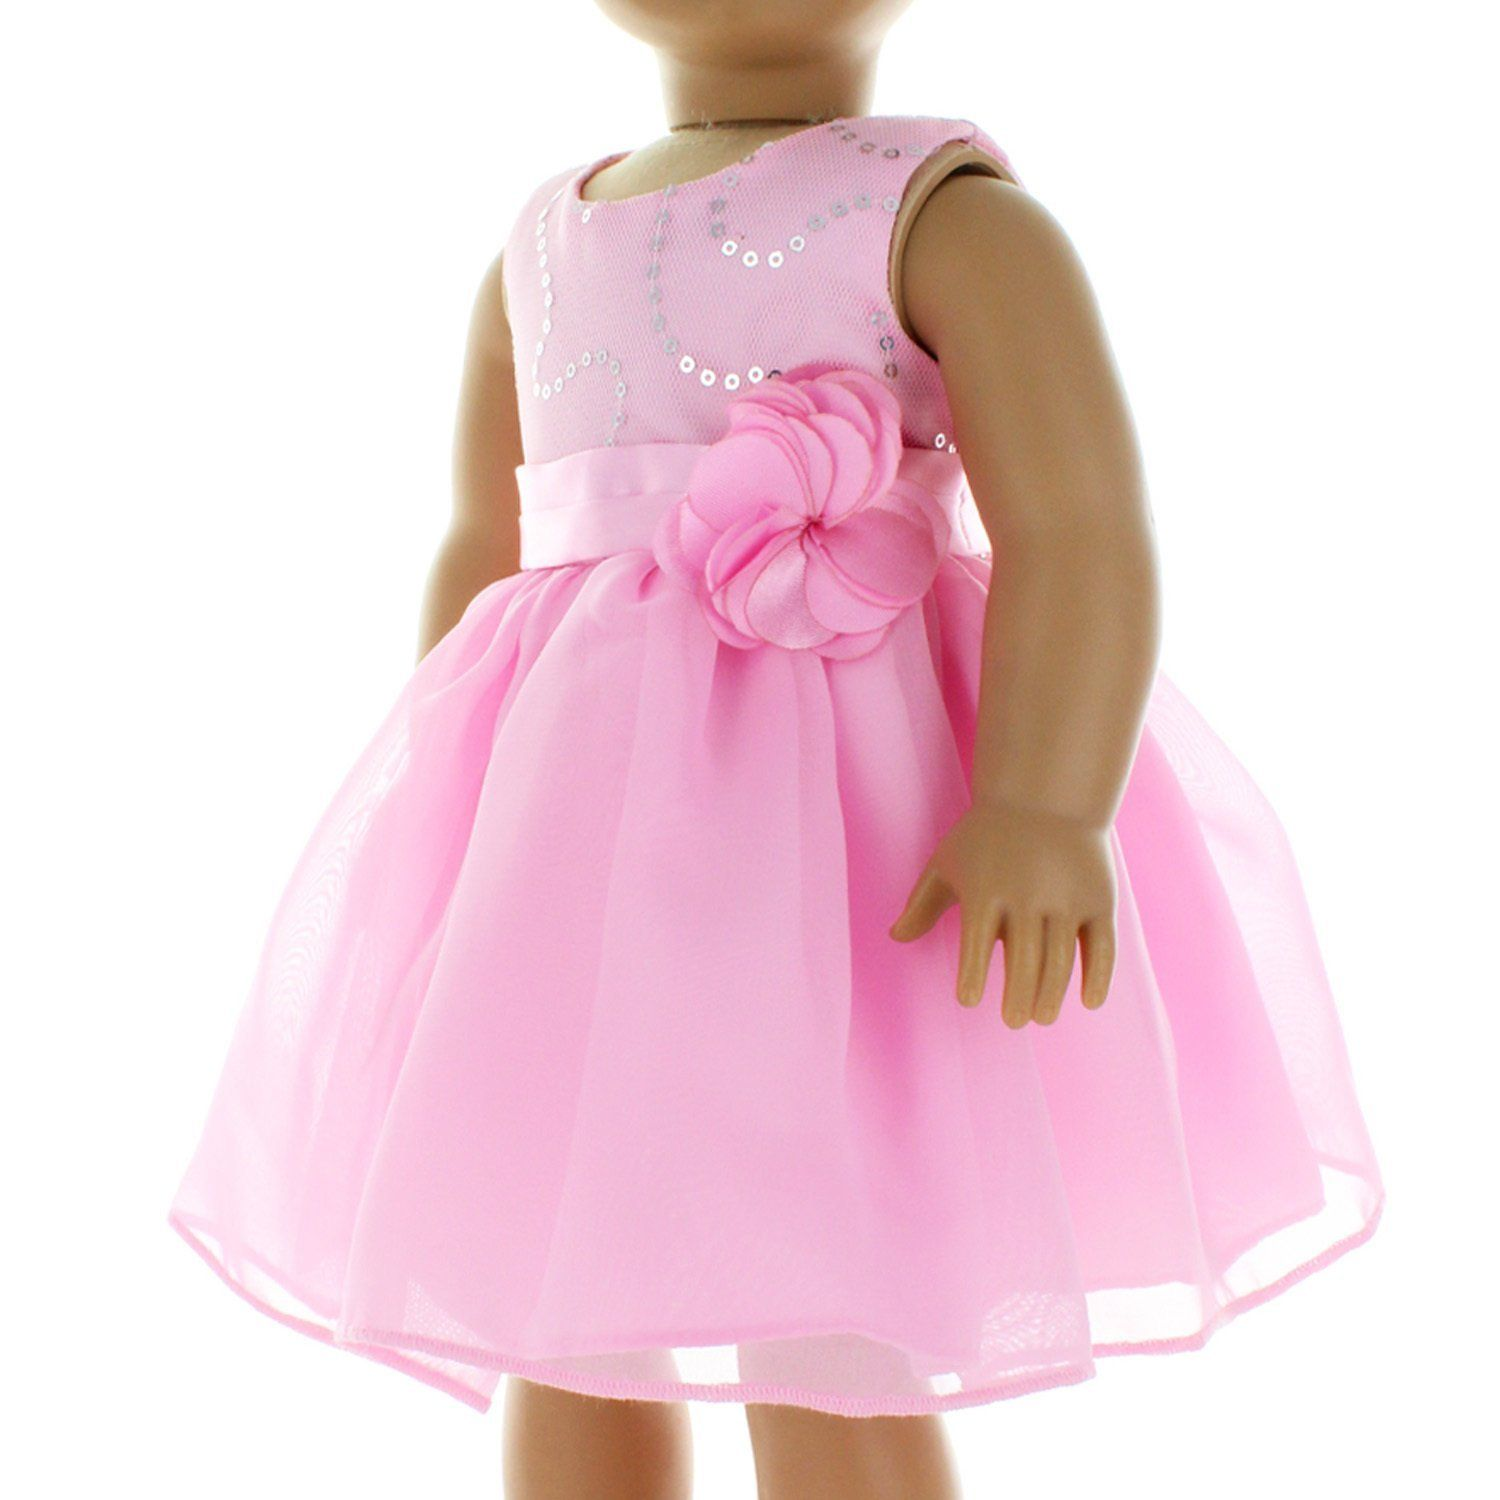 Pink dress shirt for women  Amazon Doll Clothes  Pink Dress Clothes with Flower Belt Fits